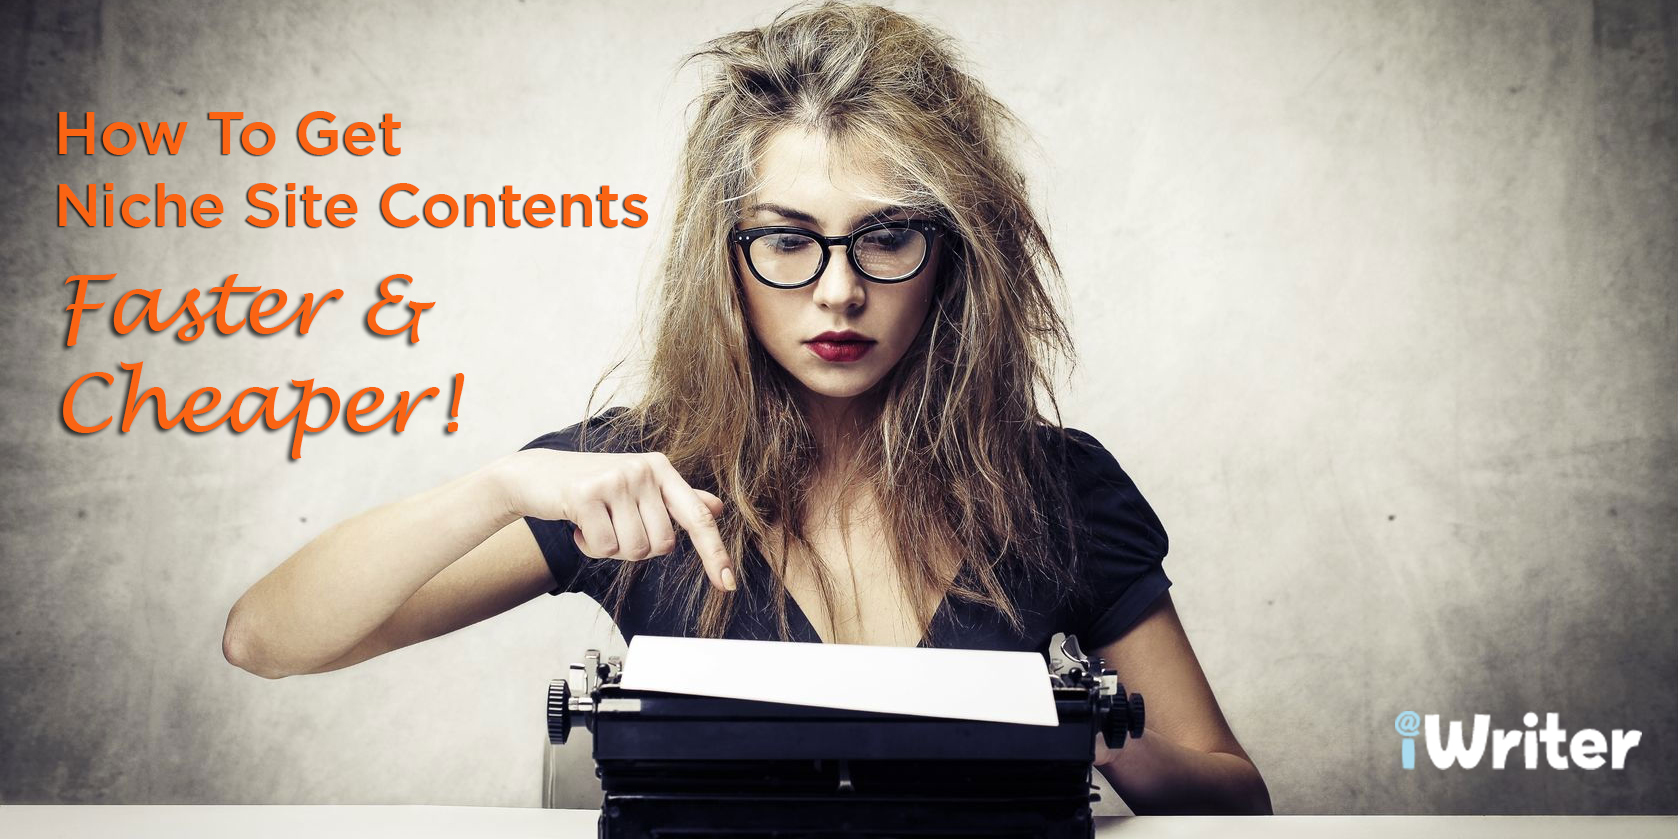 How to Hire Freelance Content Writers for Niche Websites